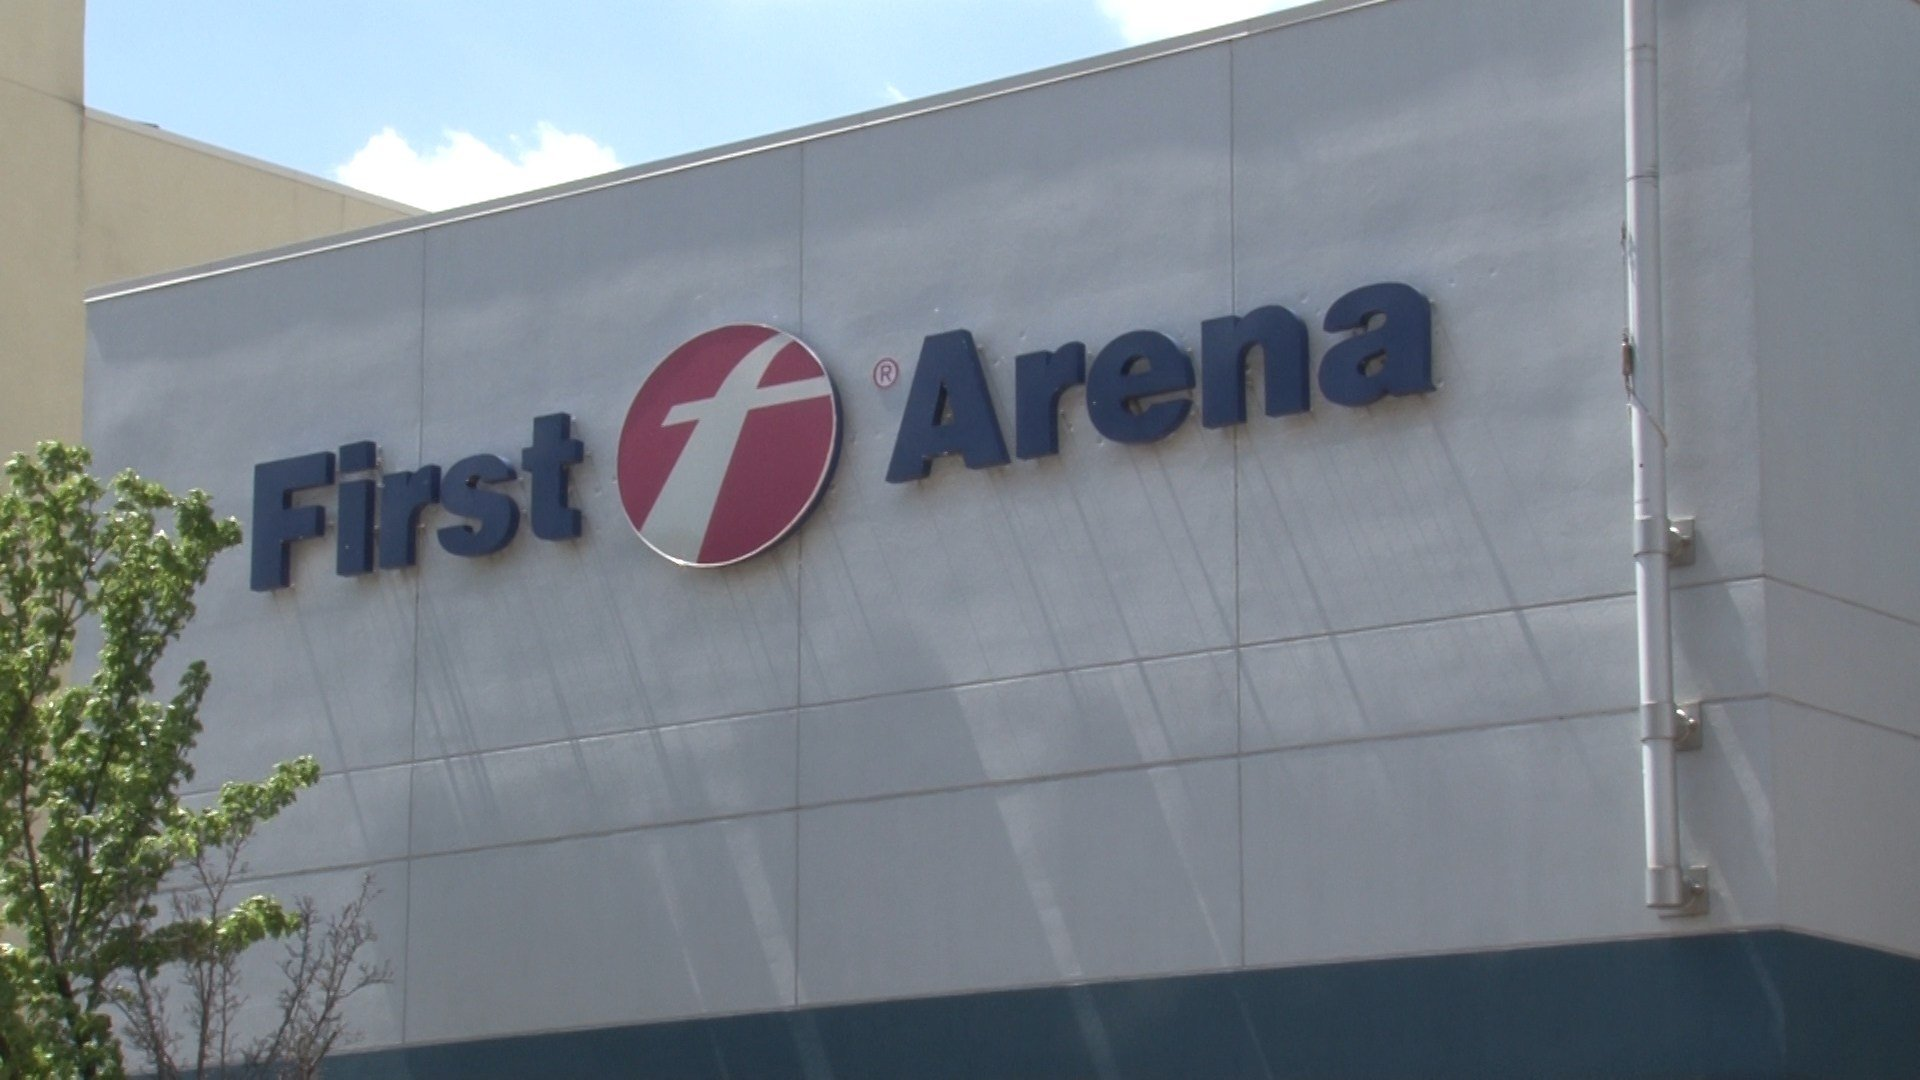 WENY News - Challenges remain with new First Arena lease deal